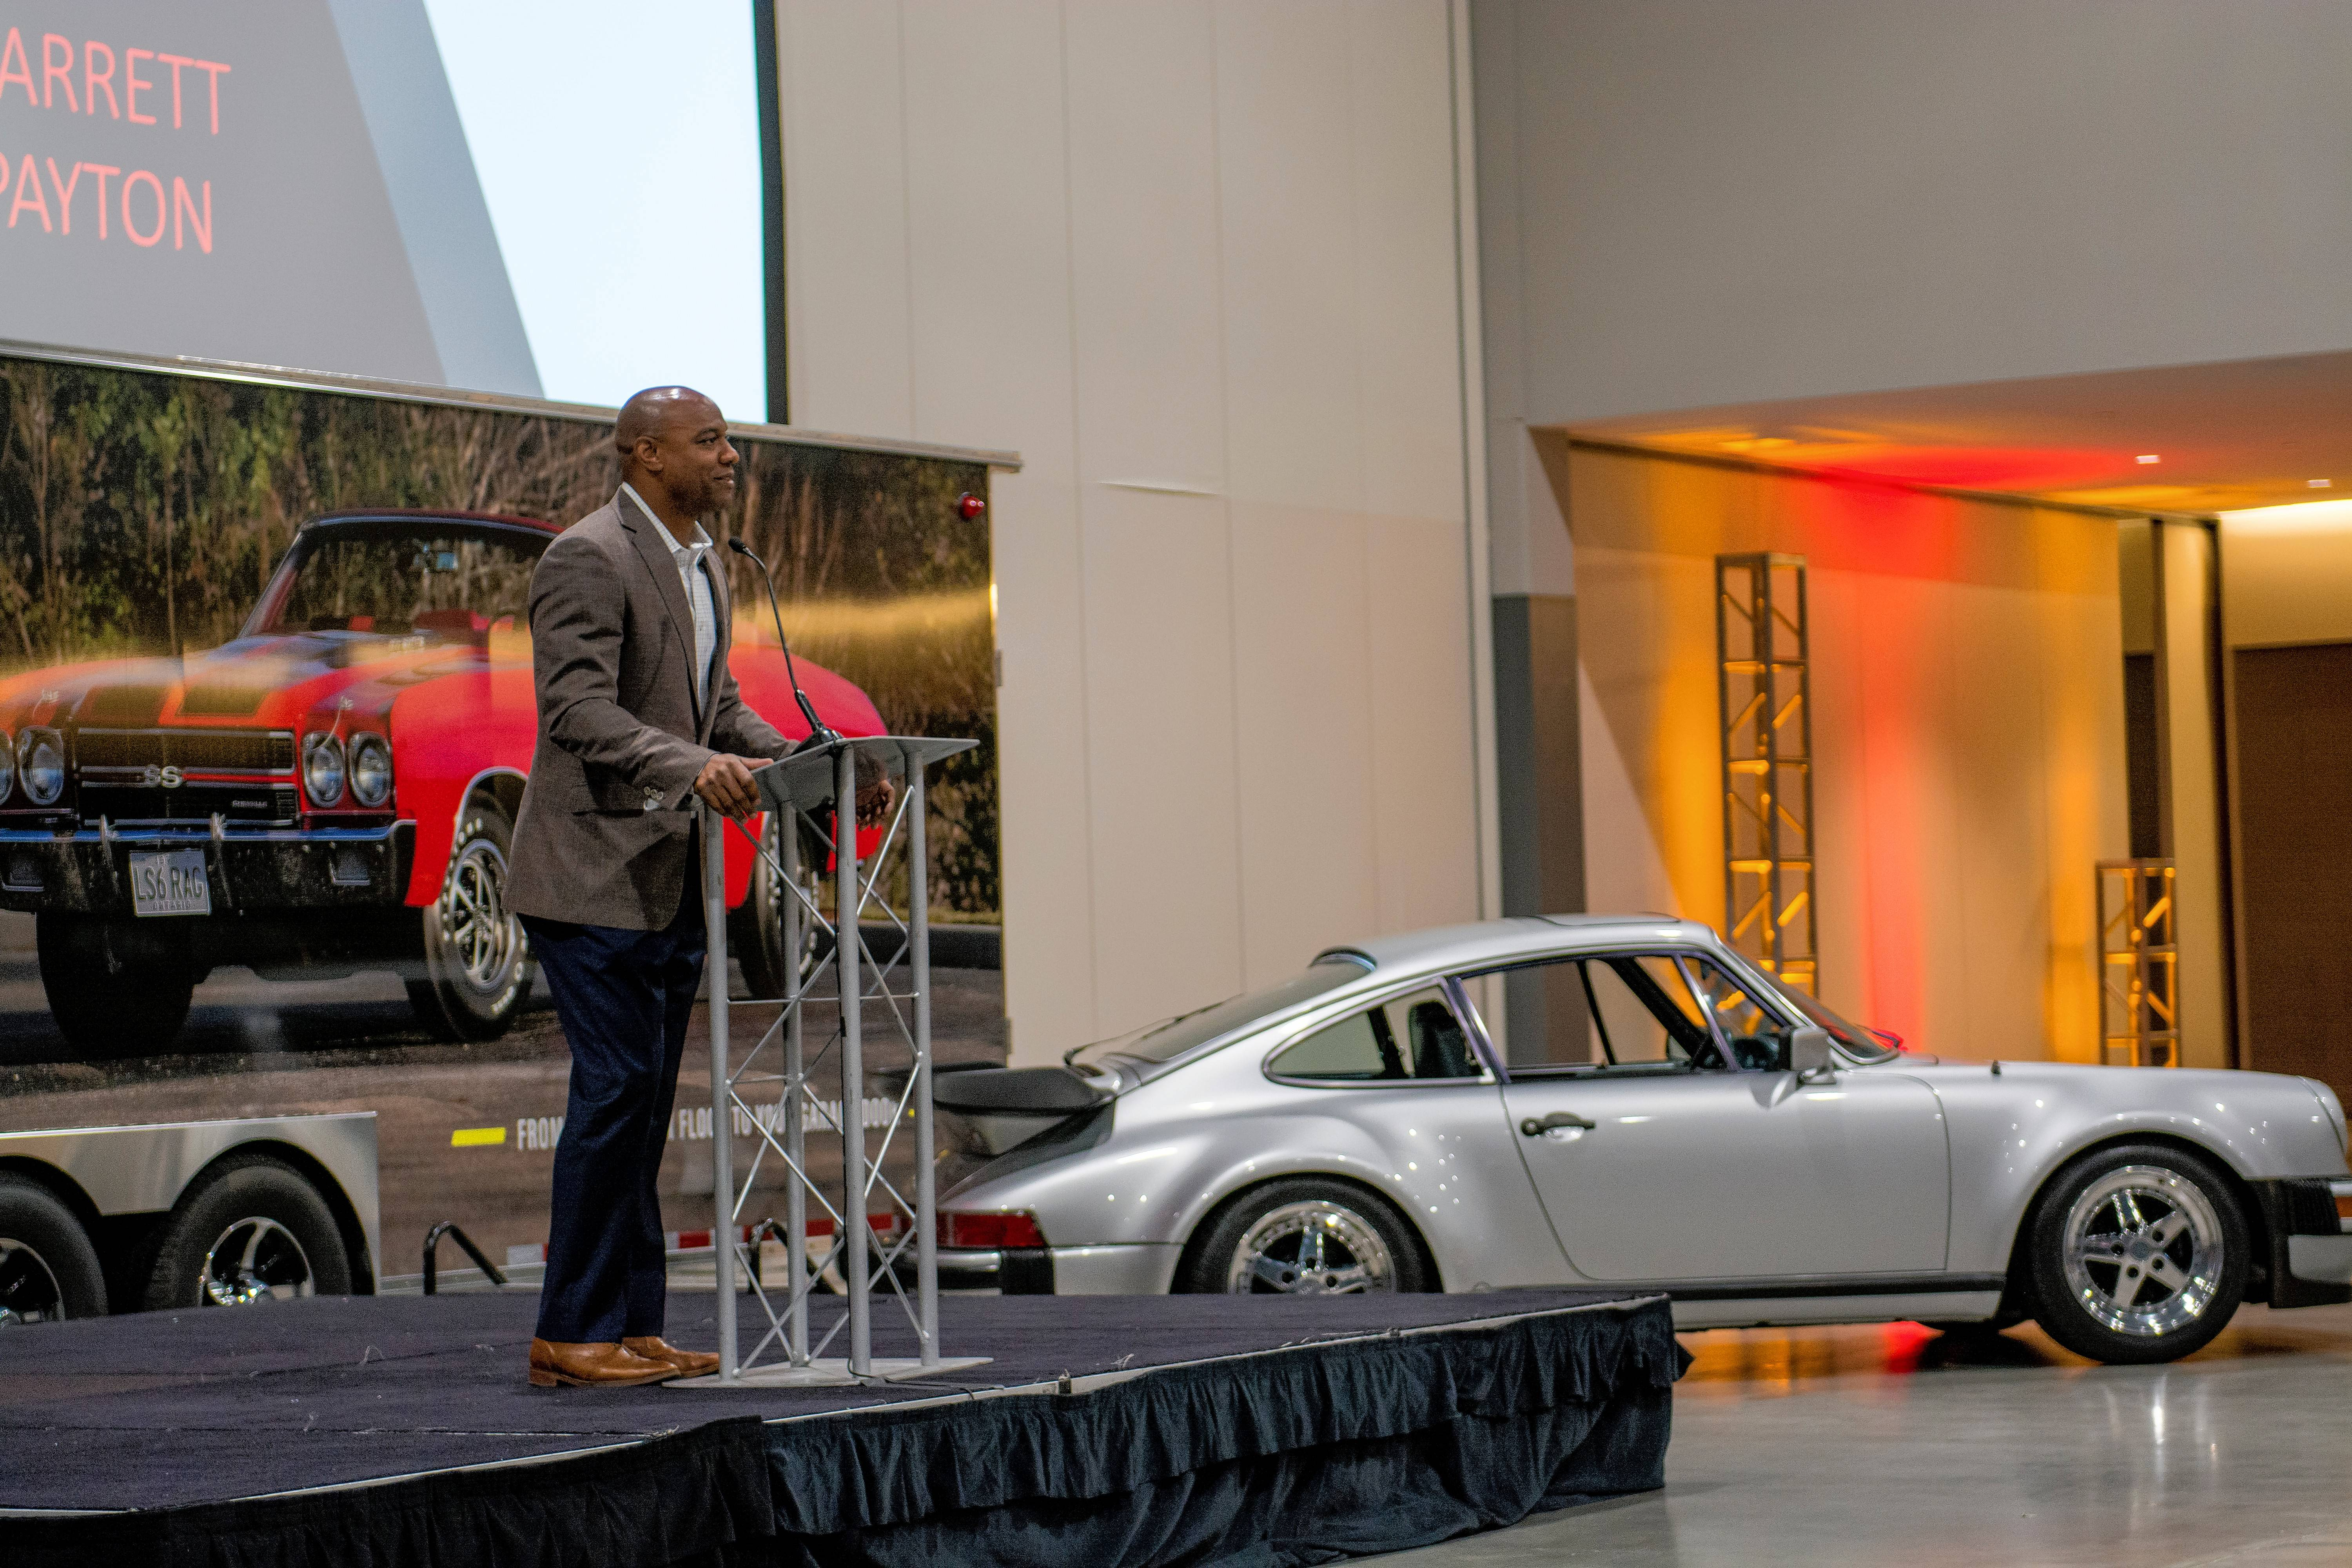 Jarrett Payton attended a news conference last week with Mecum Auctions in Schaumburg to announce his upcoming sale of a 1979 Porsche 930 Turbo once owned by his father, NFL Hall of Famer Walter Payton.